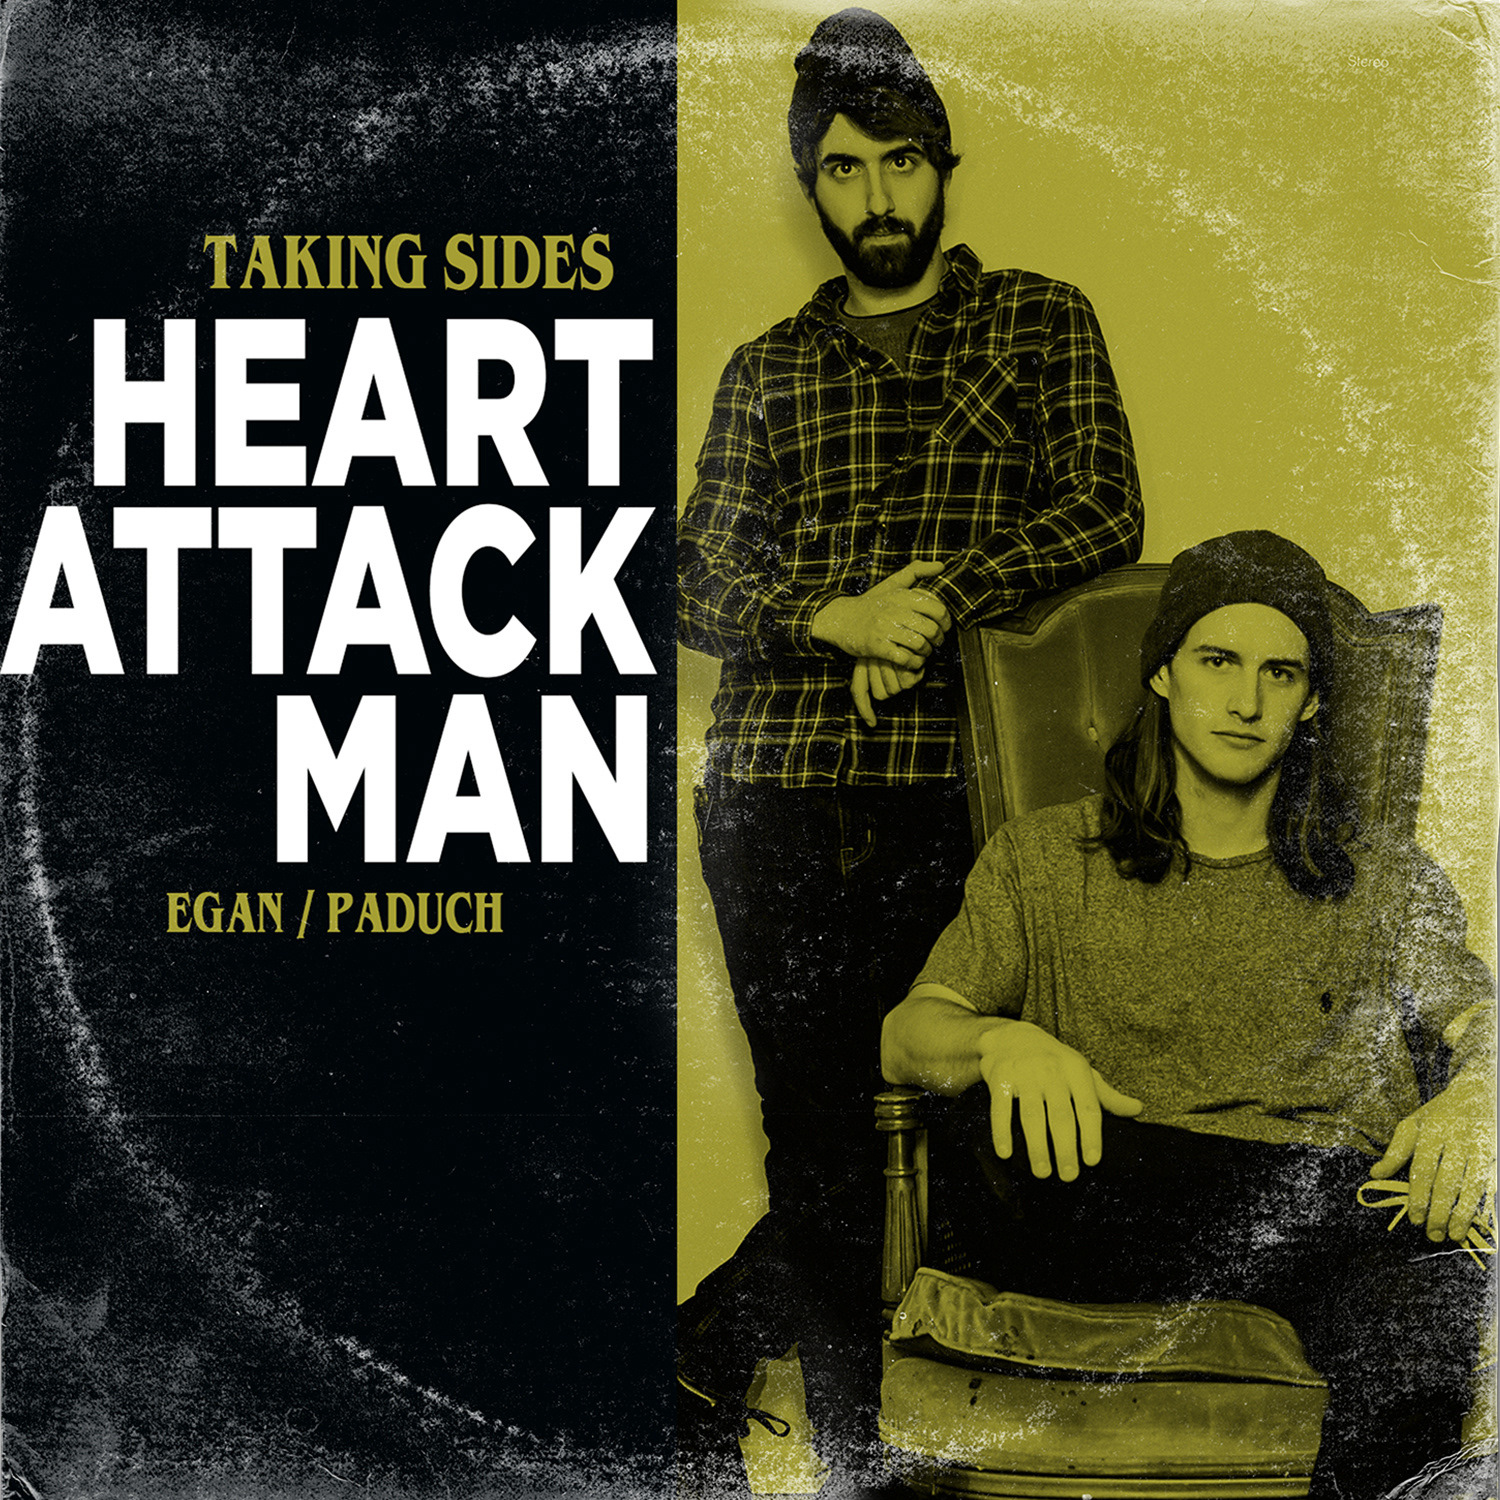 Heart Attack Man - Taking Sides Digital Single - Photography & Design